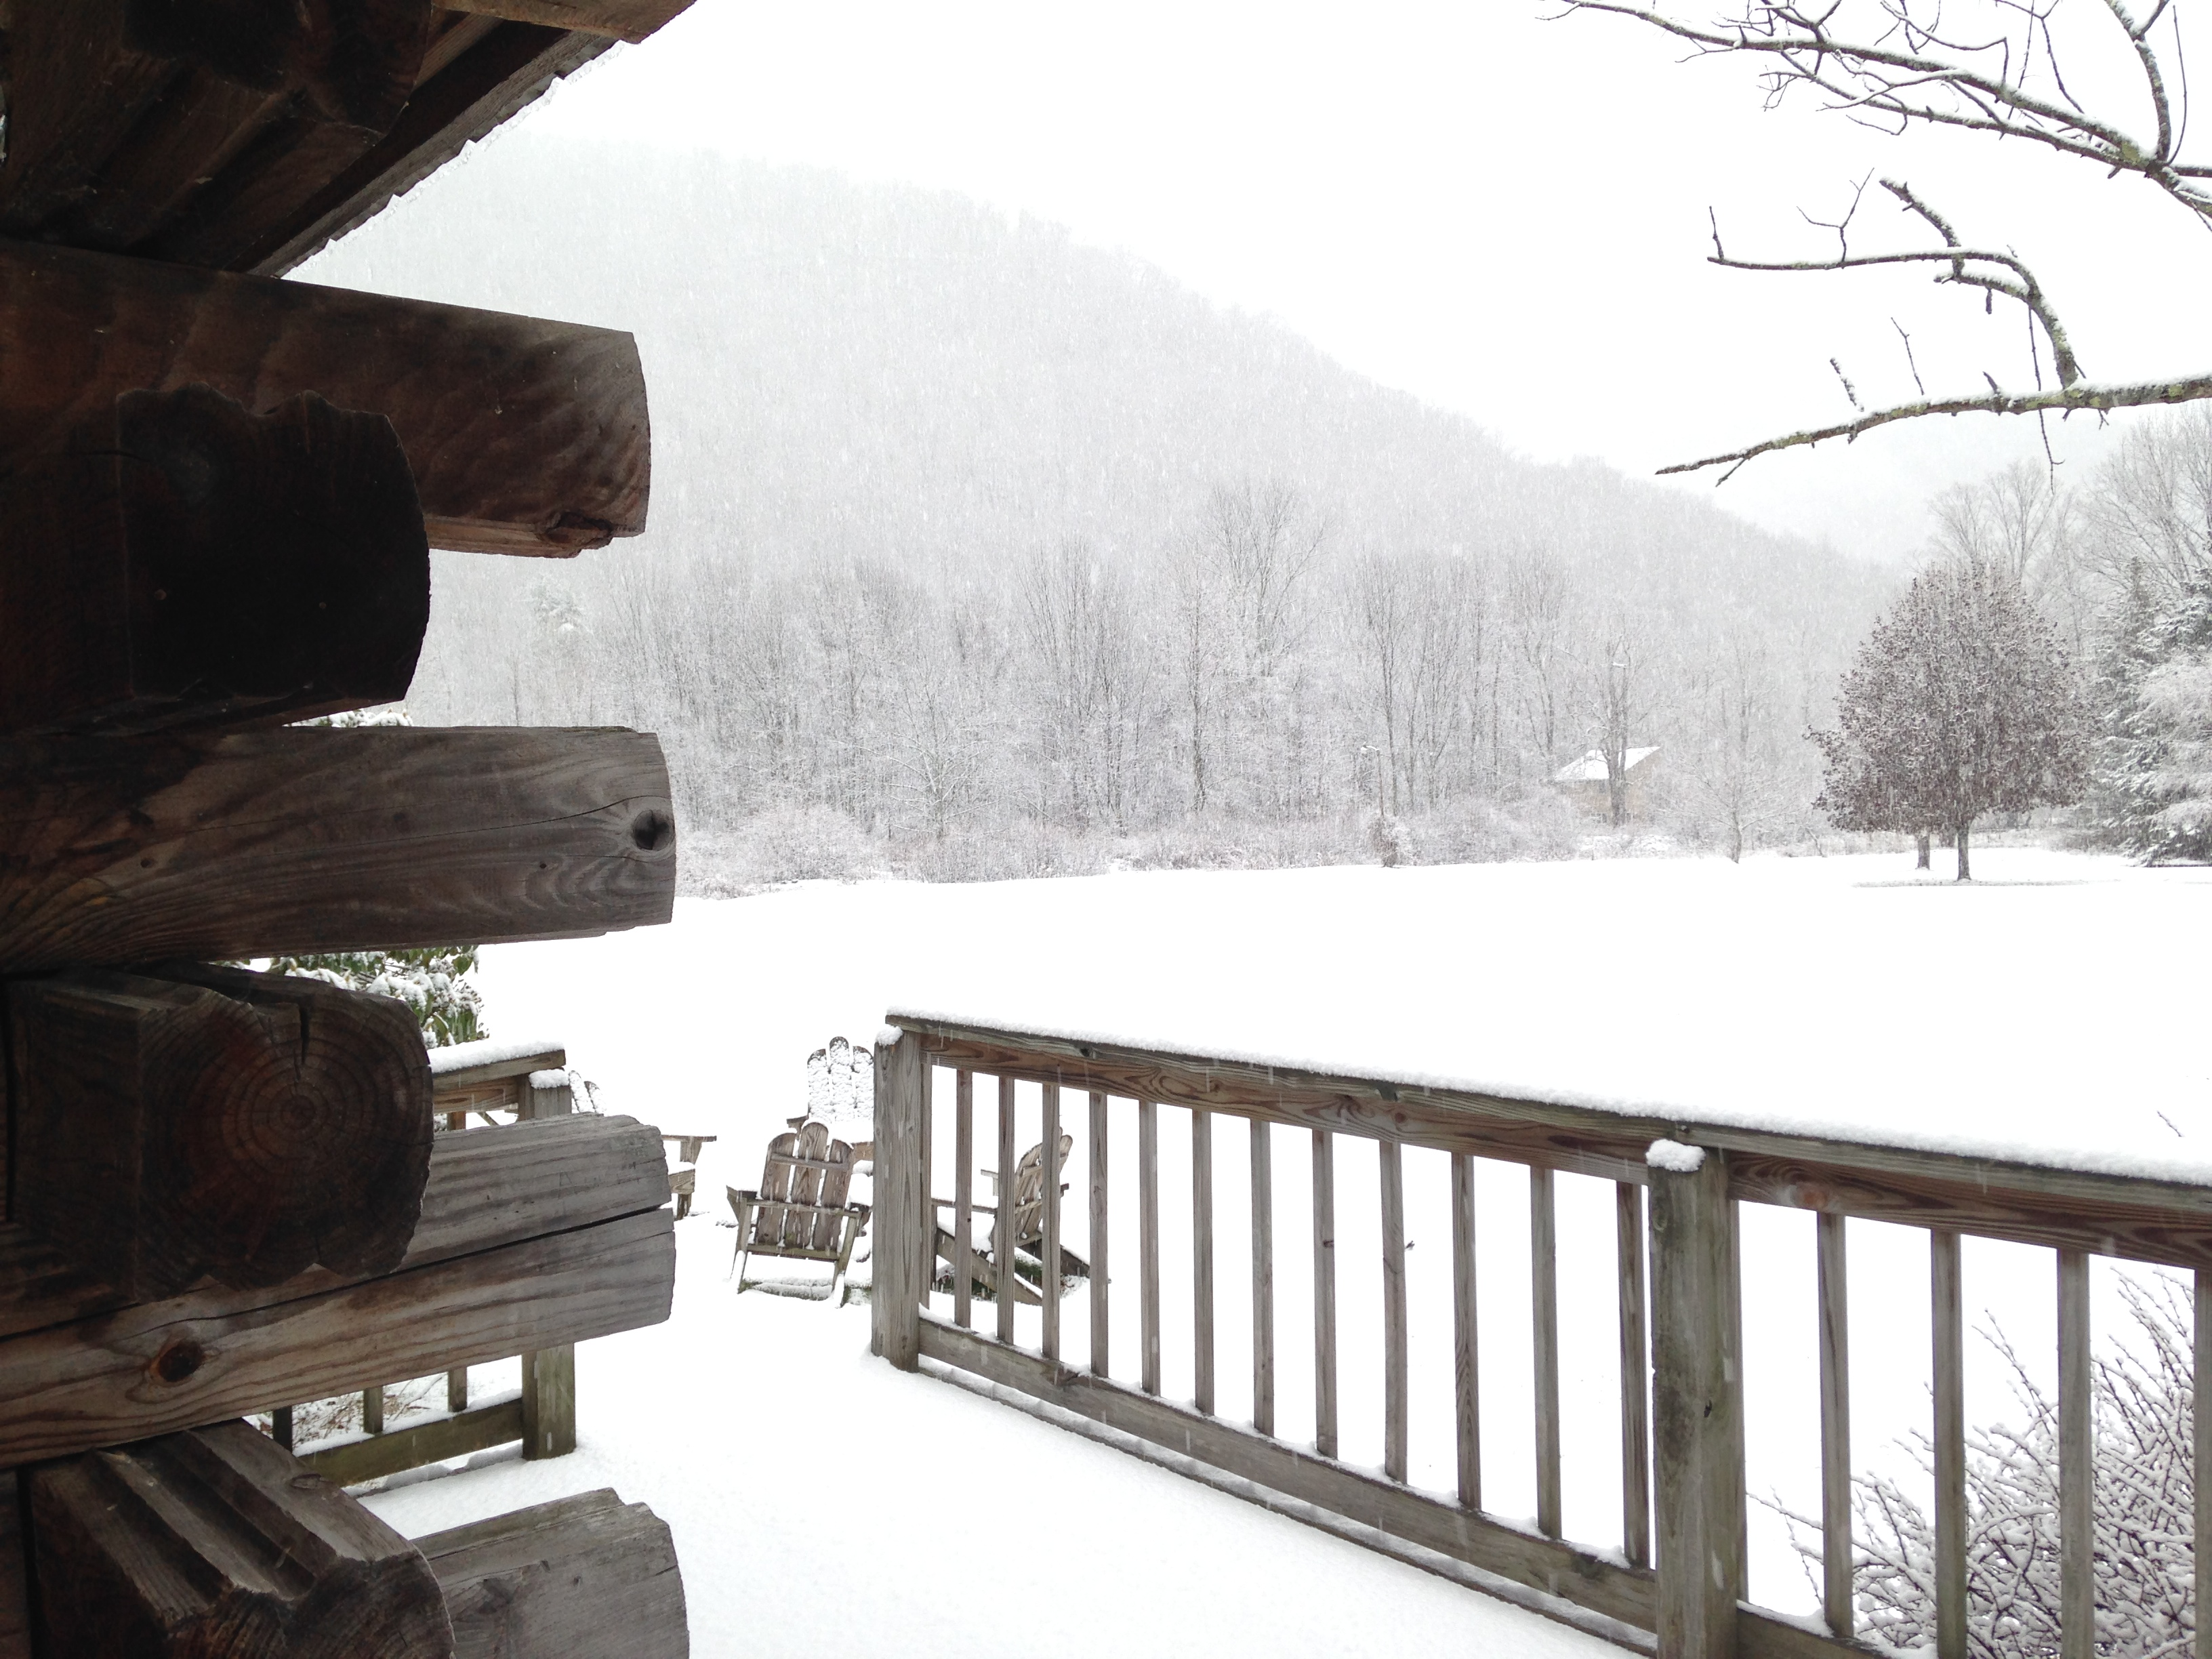 Winter ski rental in Catskills